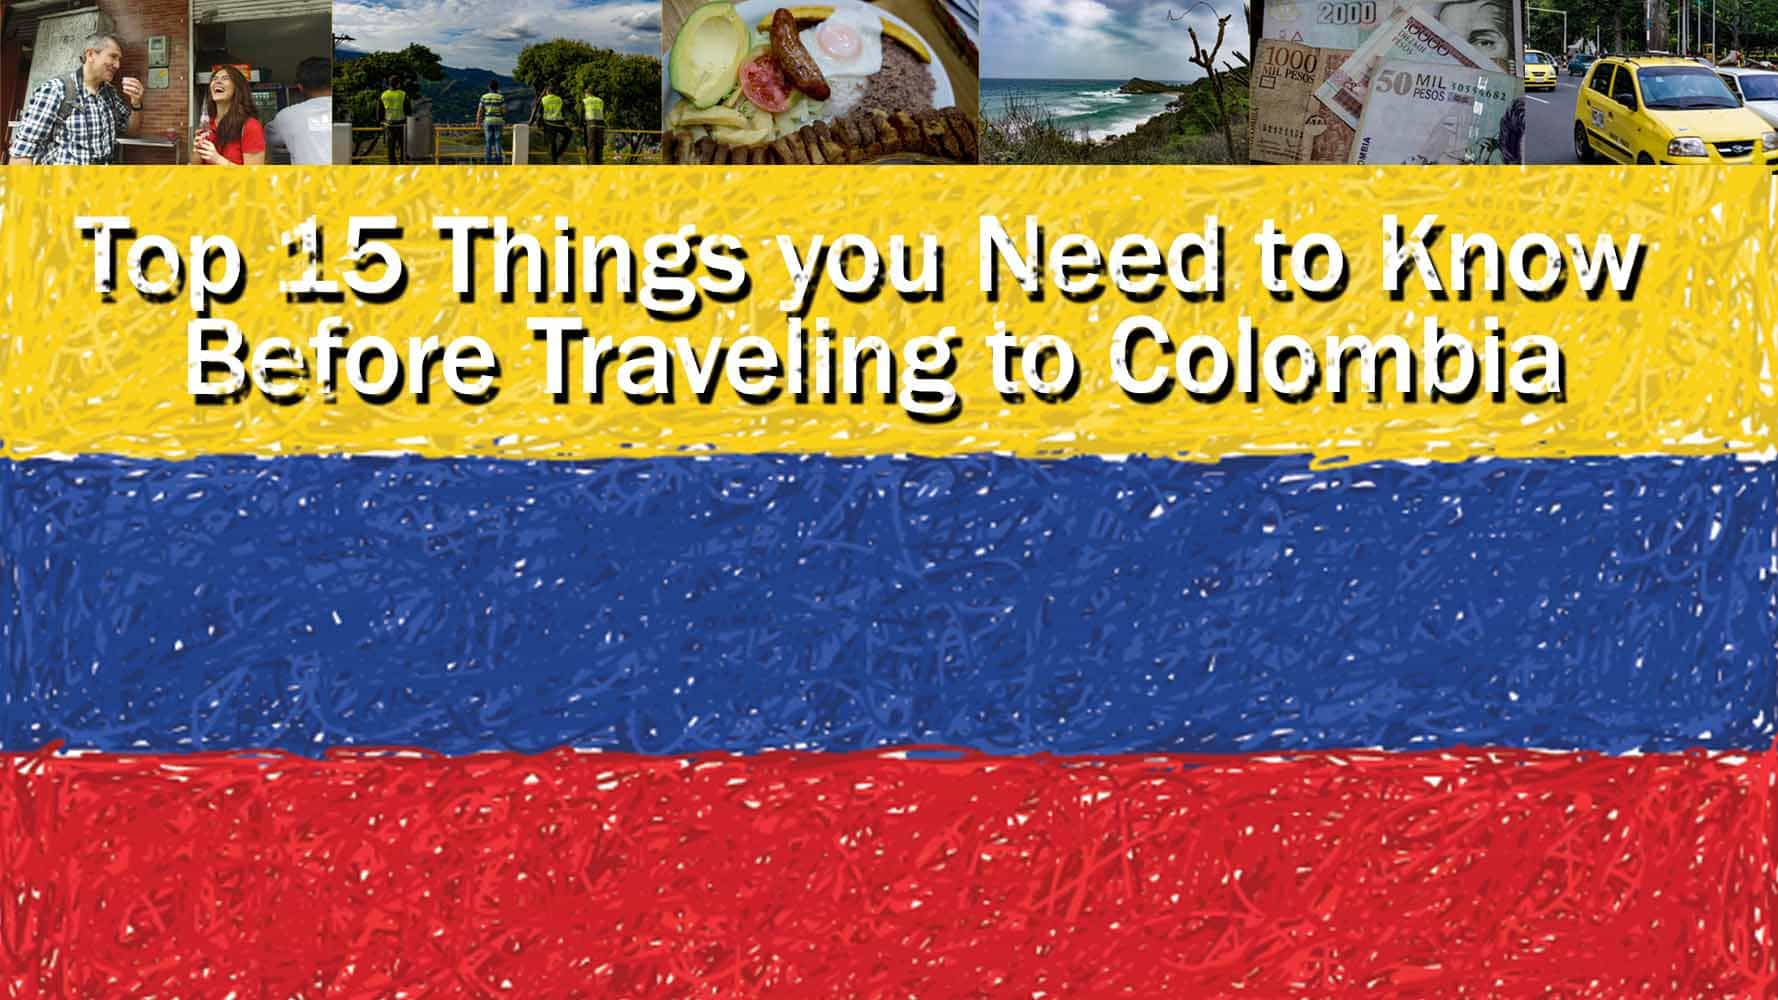 Top 15 Things You Need To Know Before Traveling To Colombia